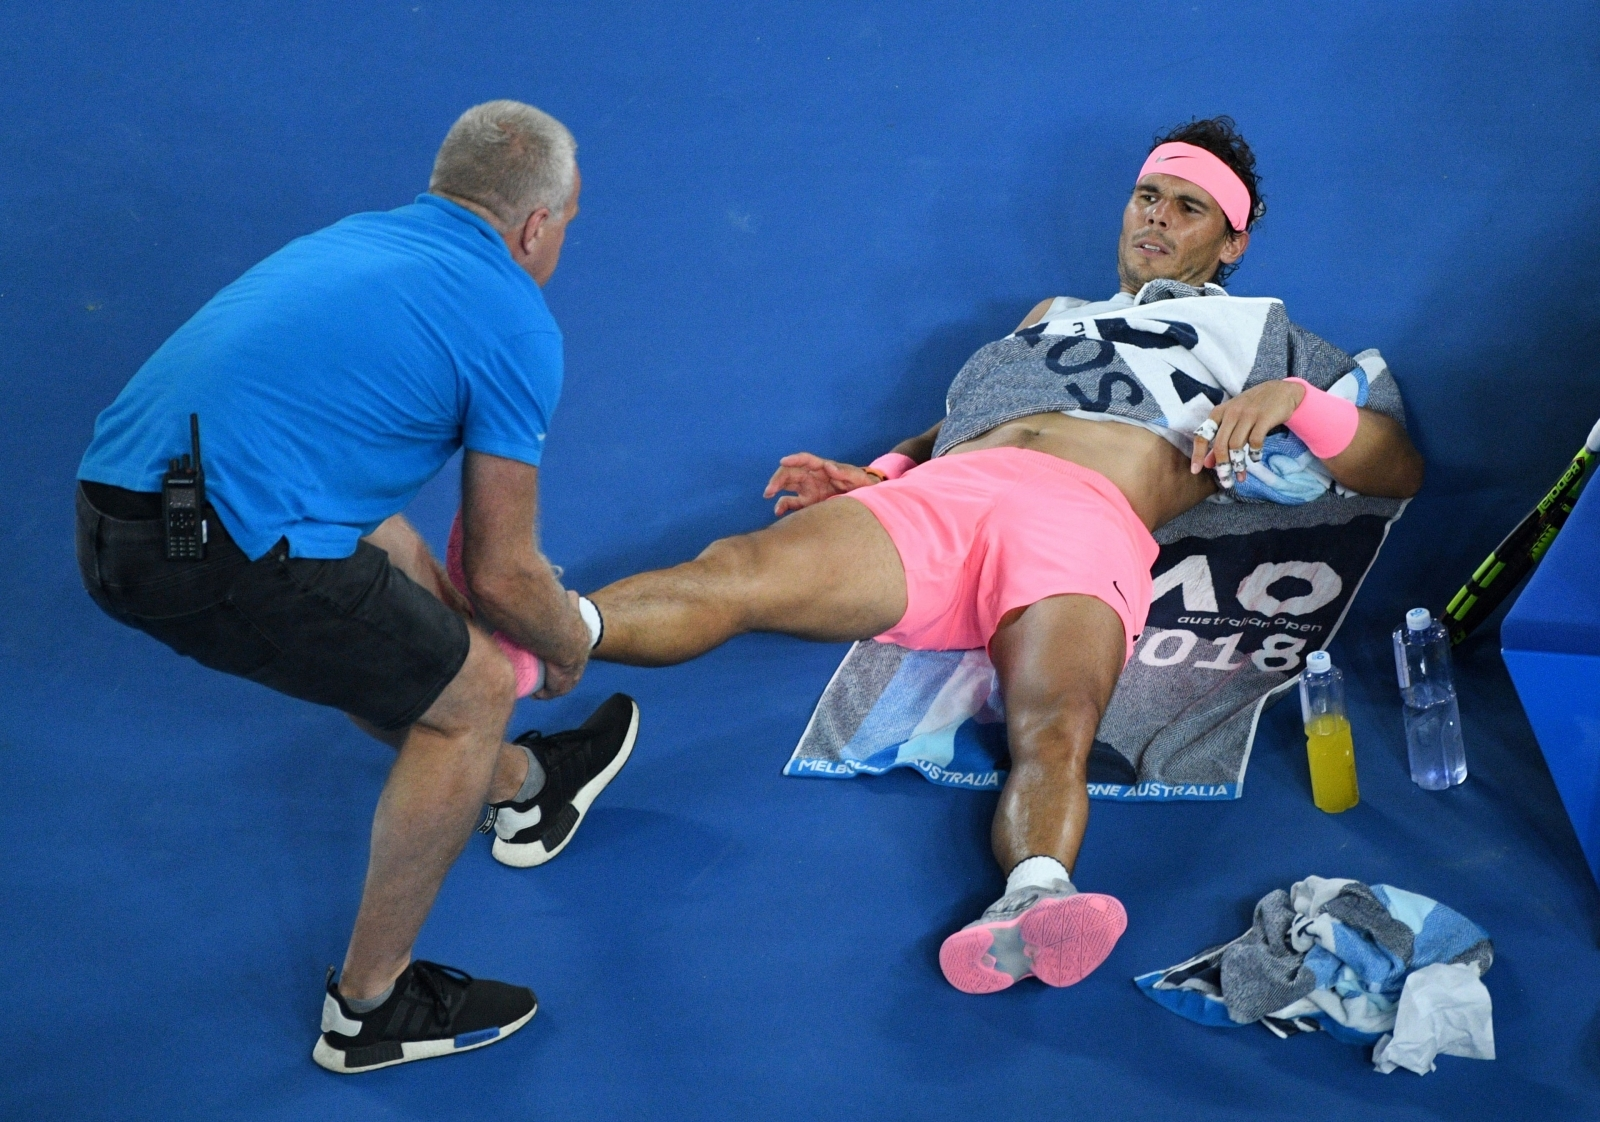 'Too many people getting injured': Rafael Nadal calls for tour rethink after Australian Open retirement